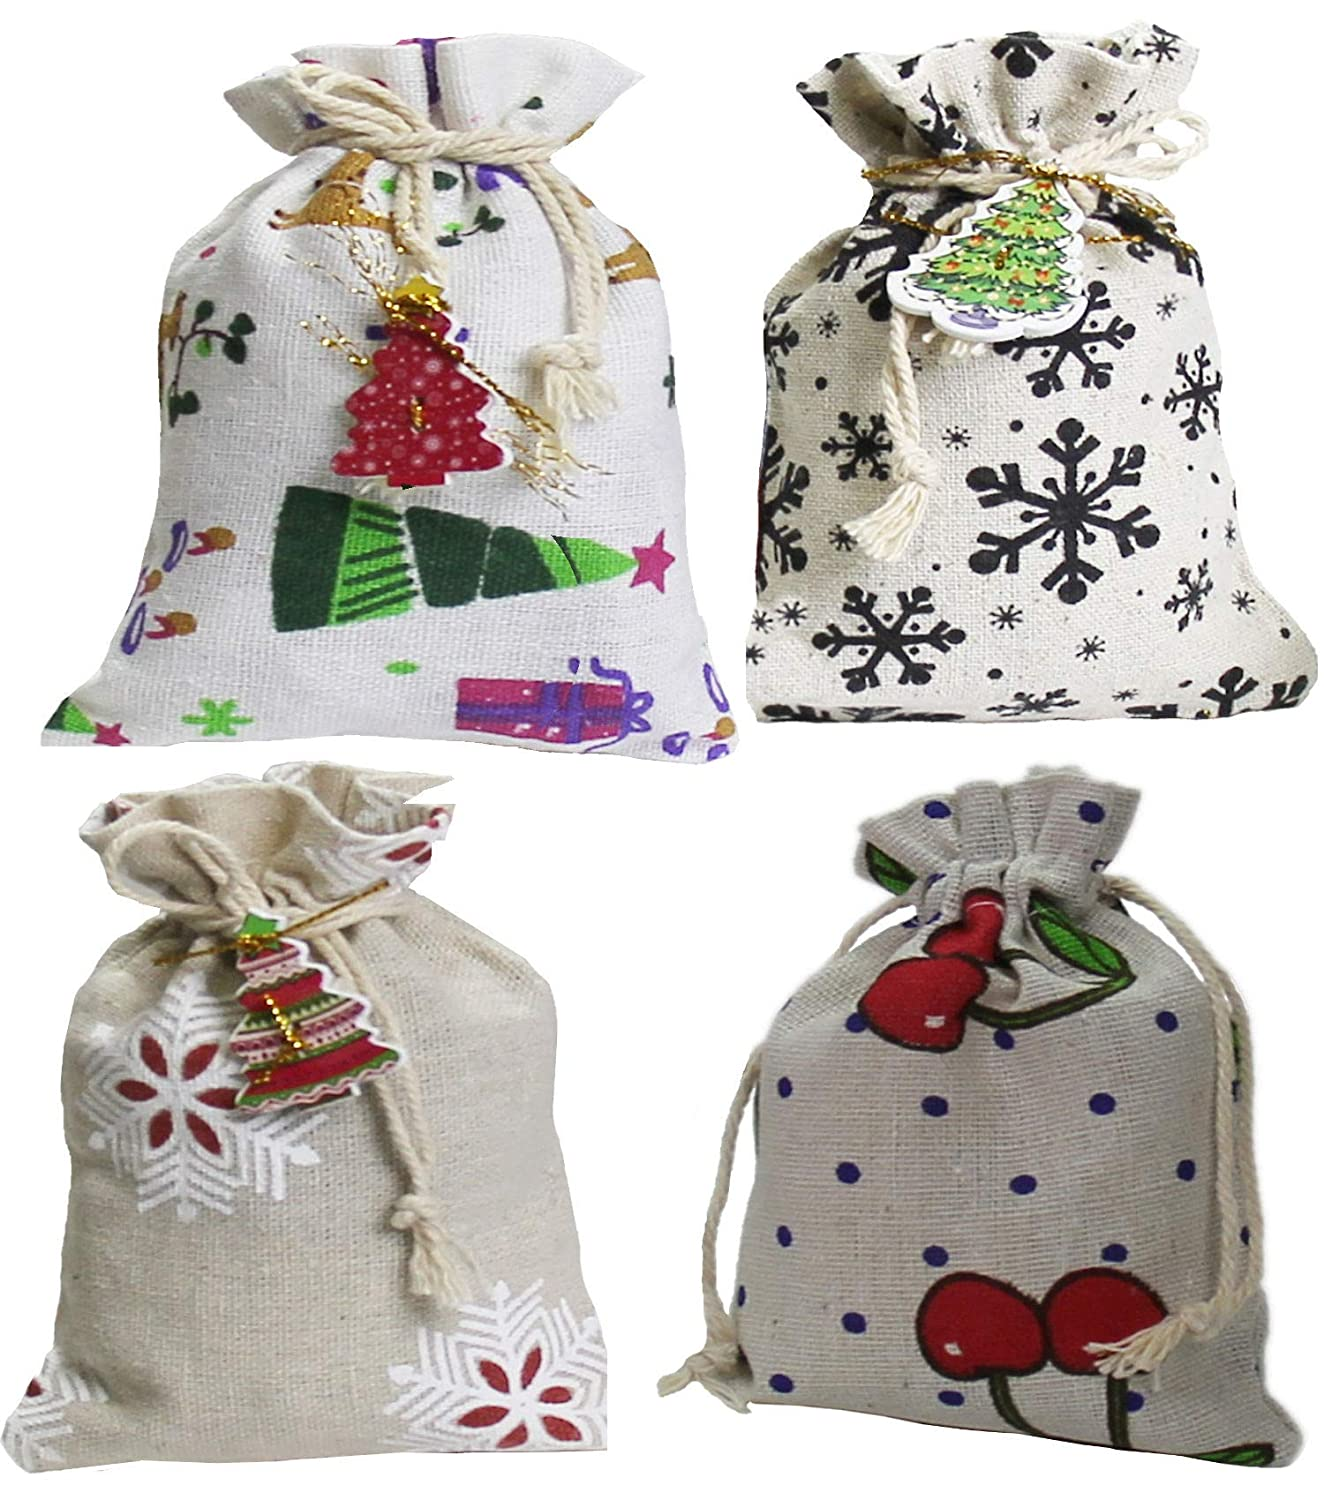 Set of 20 Drawstring Cloth Christmas Treat Bags | Small Burlap Party Favor Pouches | Reusable Candy Bags Cole & Cade